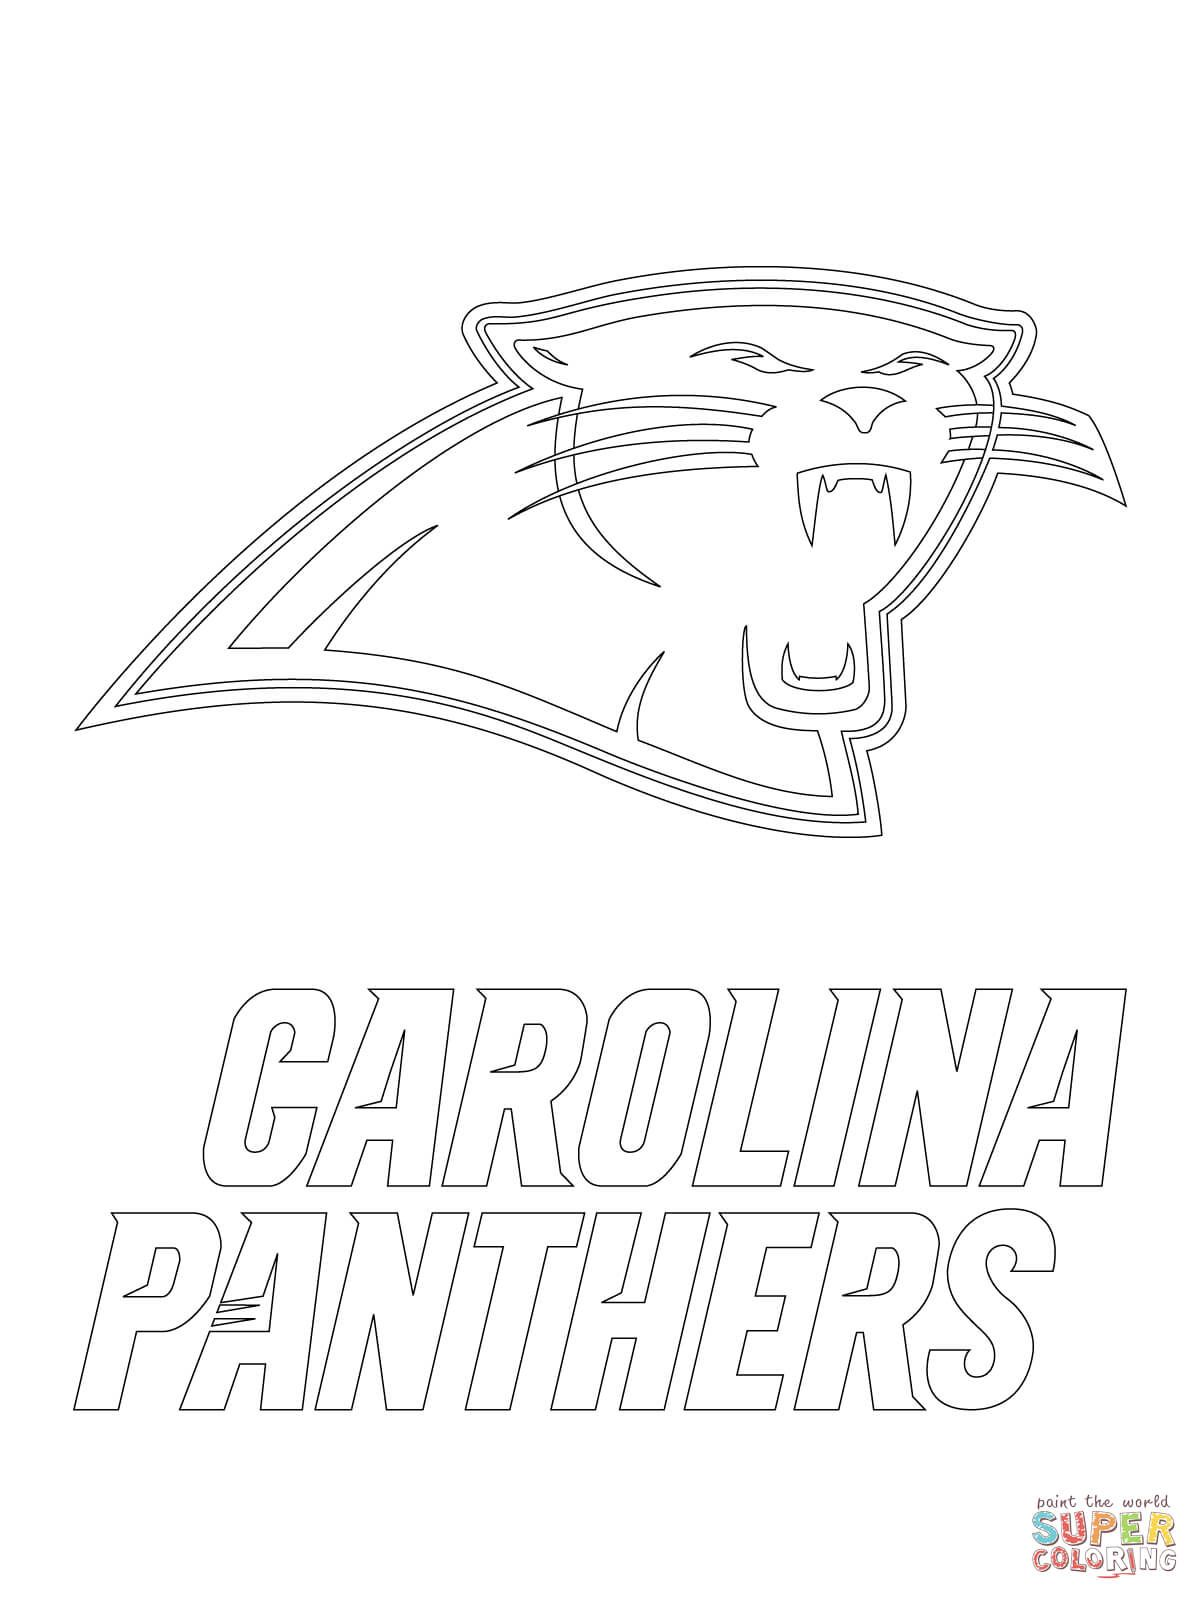 Pin by julia on Colorings | Coloring pages, Panthers, Football